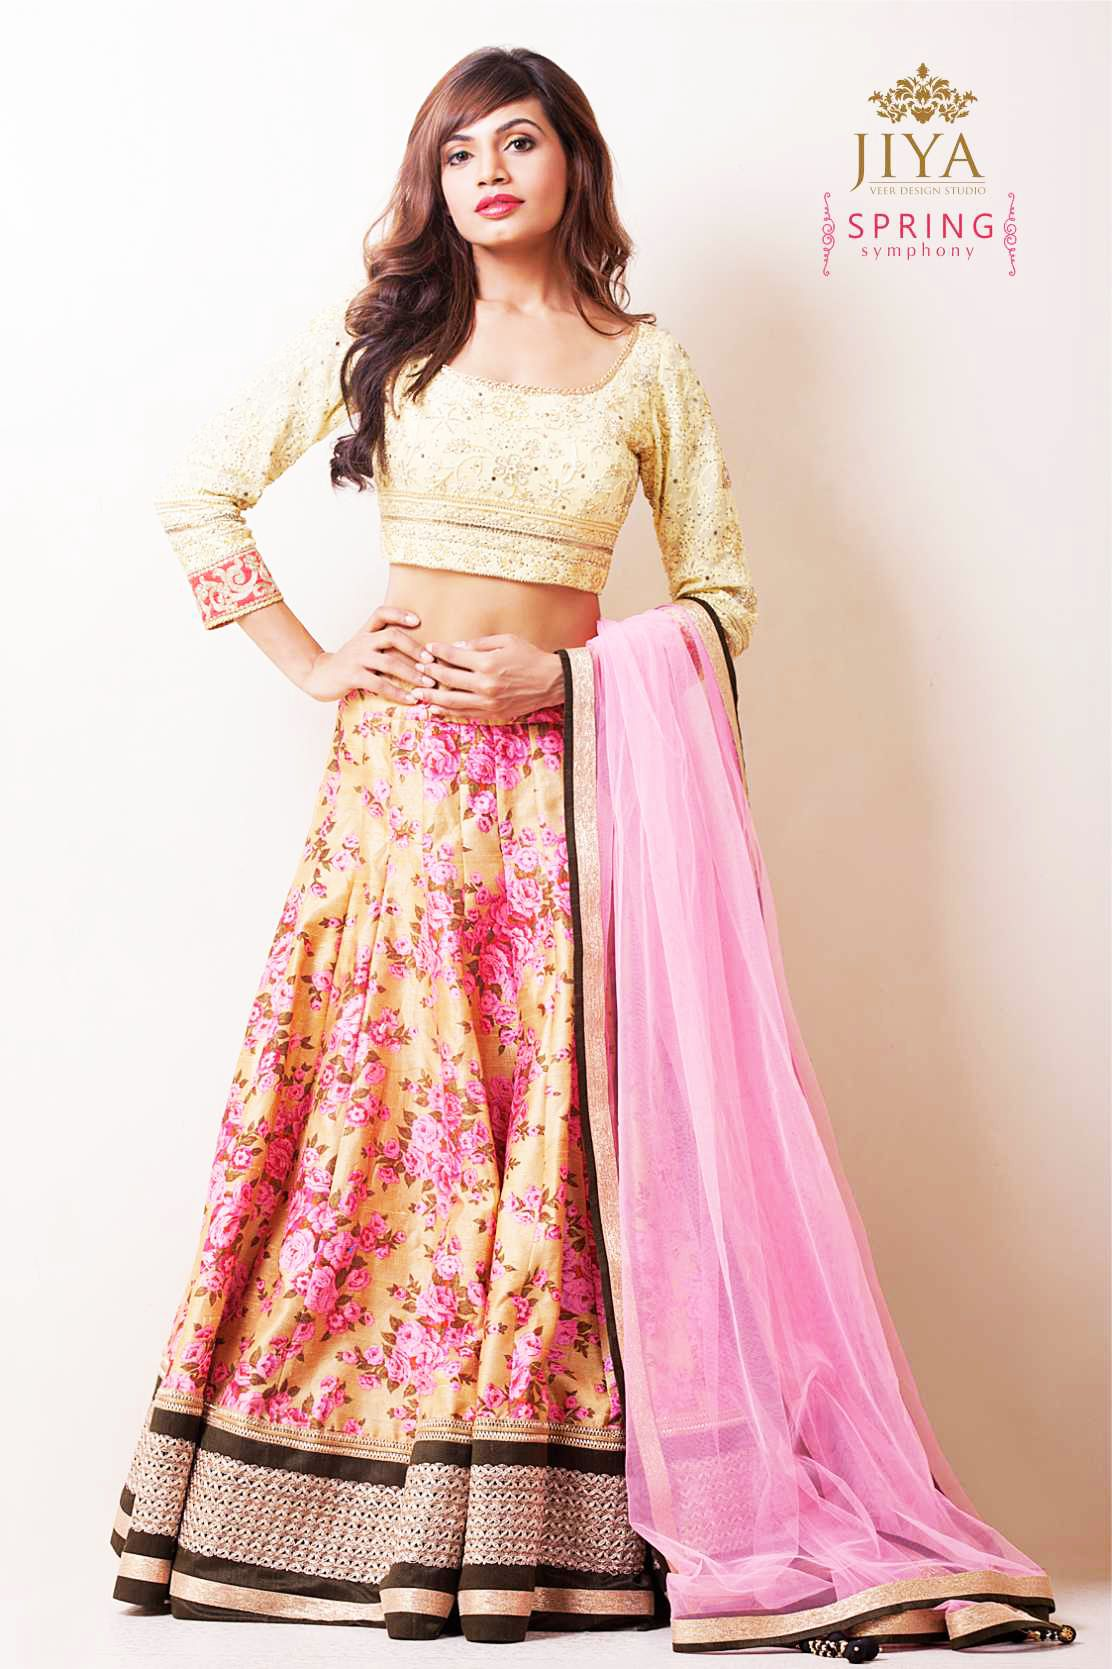 Spring symphony lehenga in beige and rose with an all over print. A lemon colored chikankari blouse completes the  contemporary look.